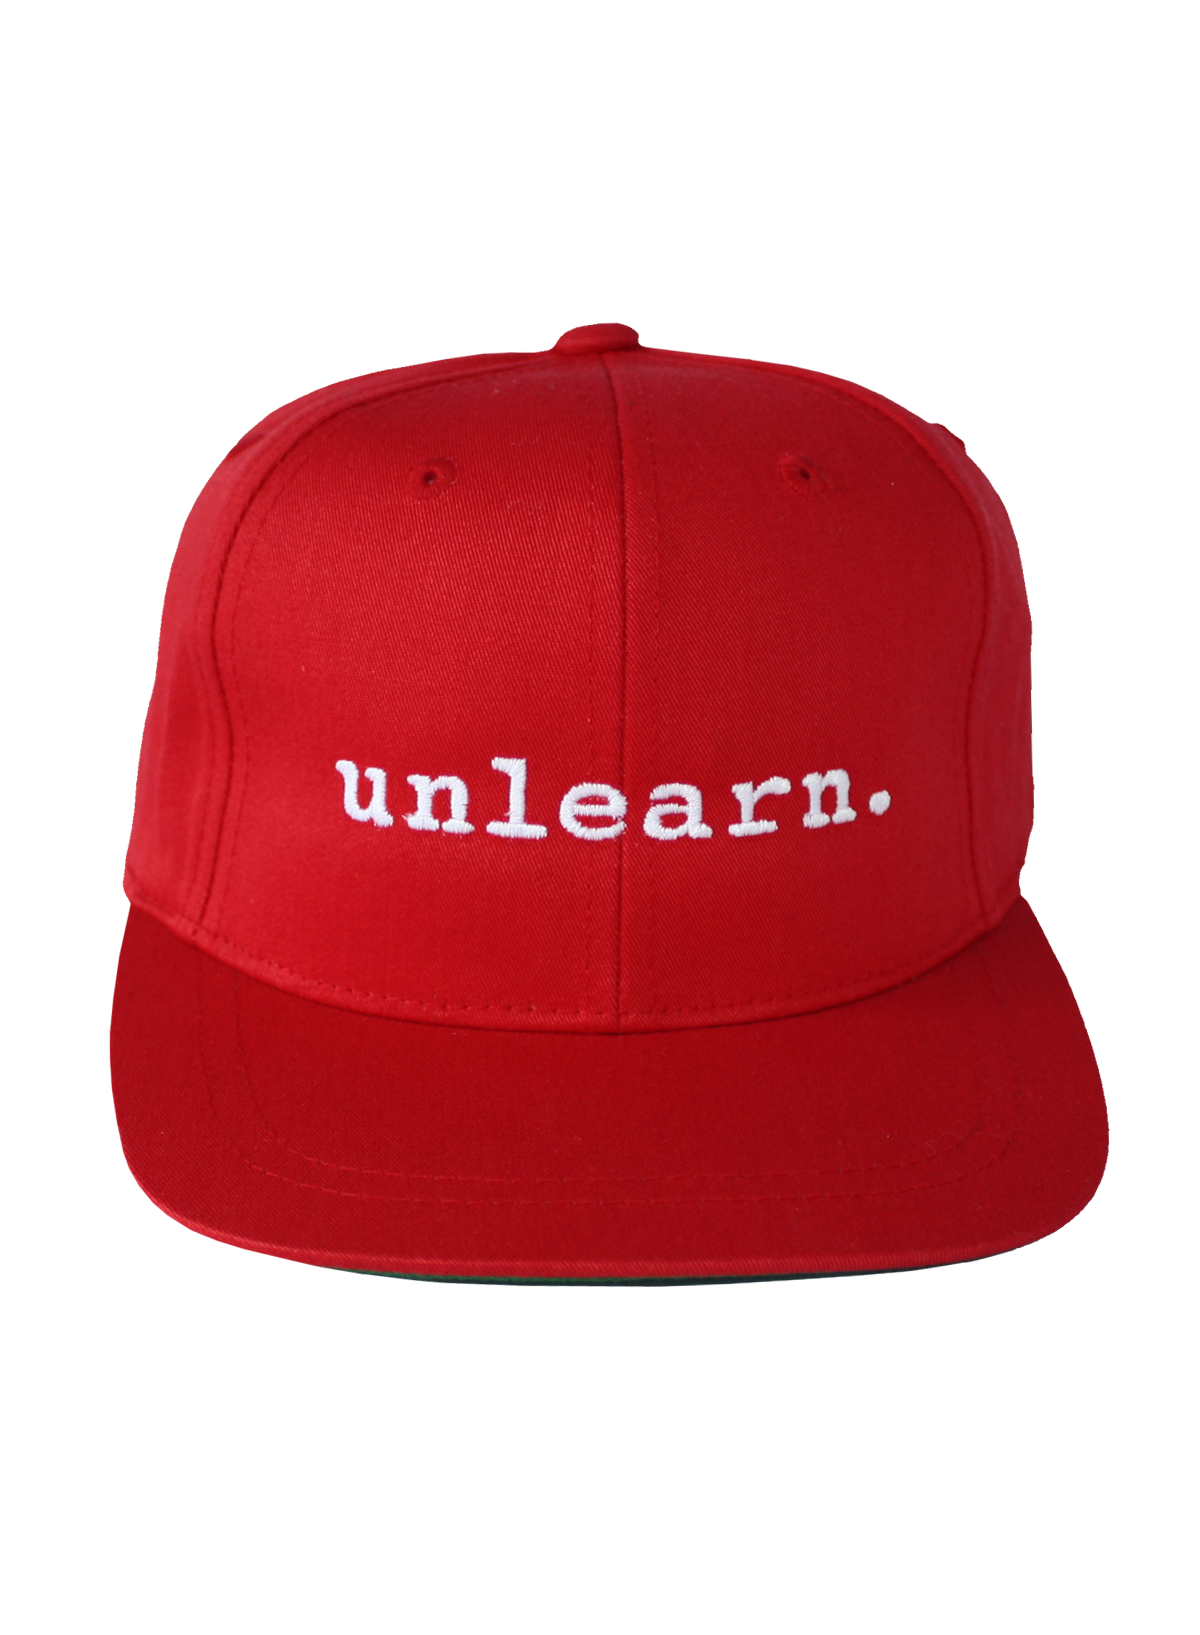 Transparent snapback red. Unlearn youth hat